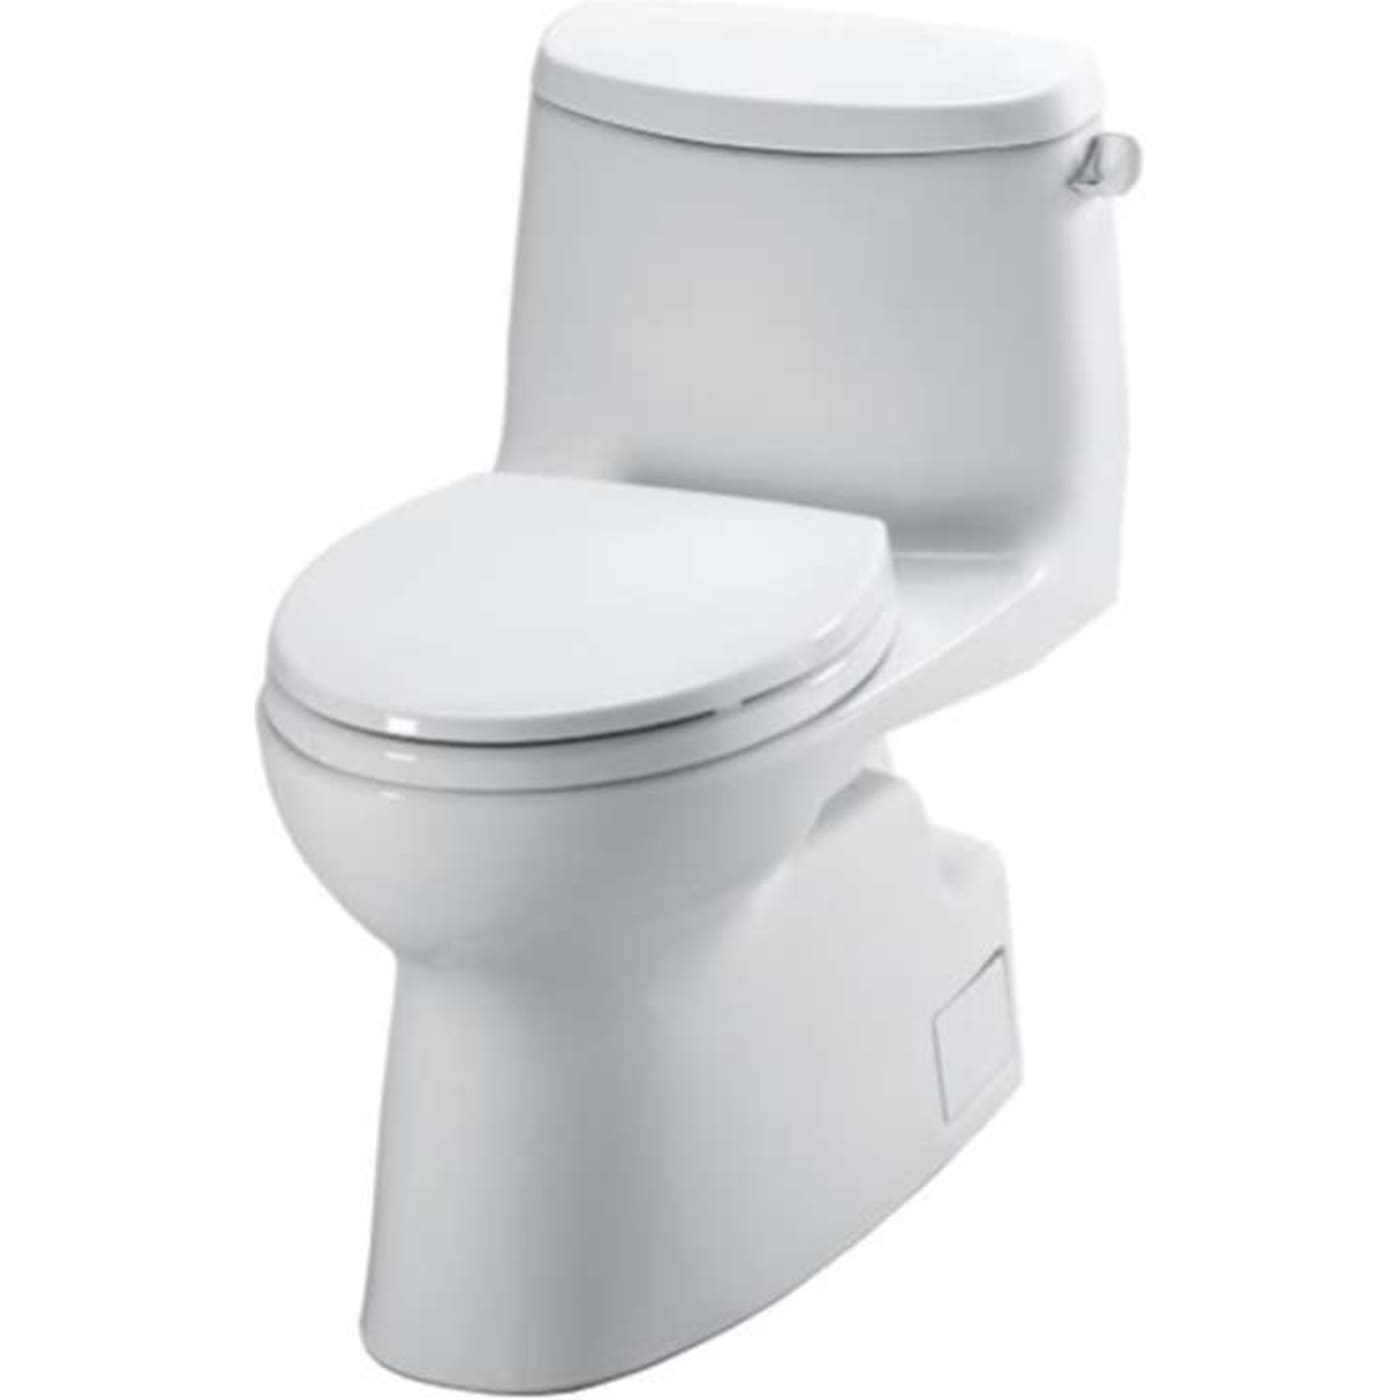 Toto Carlyle II Elongated Toilet MS614114CEFRG#01 Cotton White ...